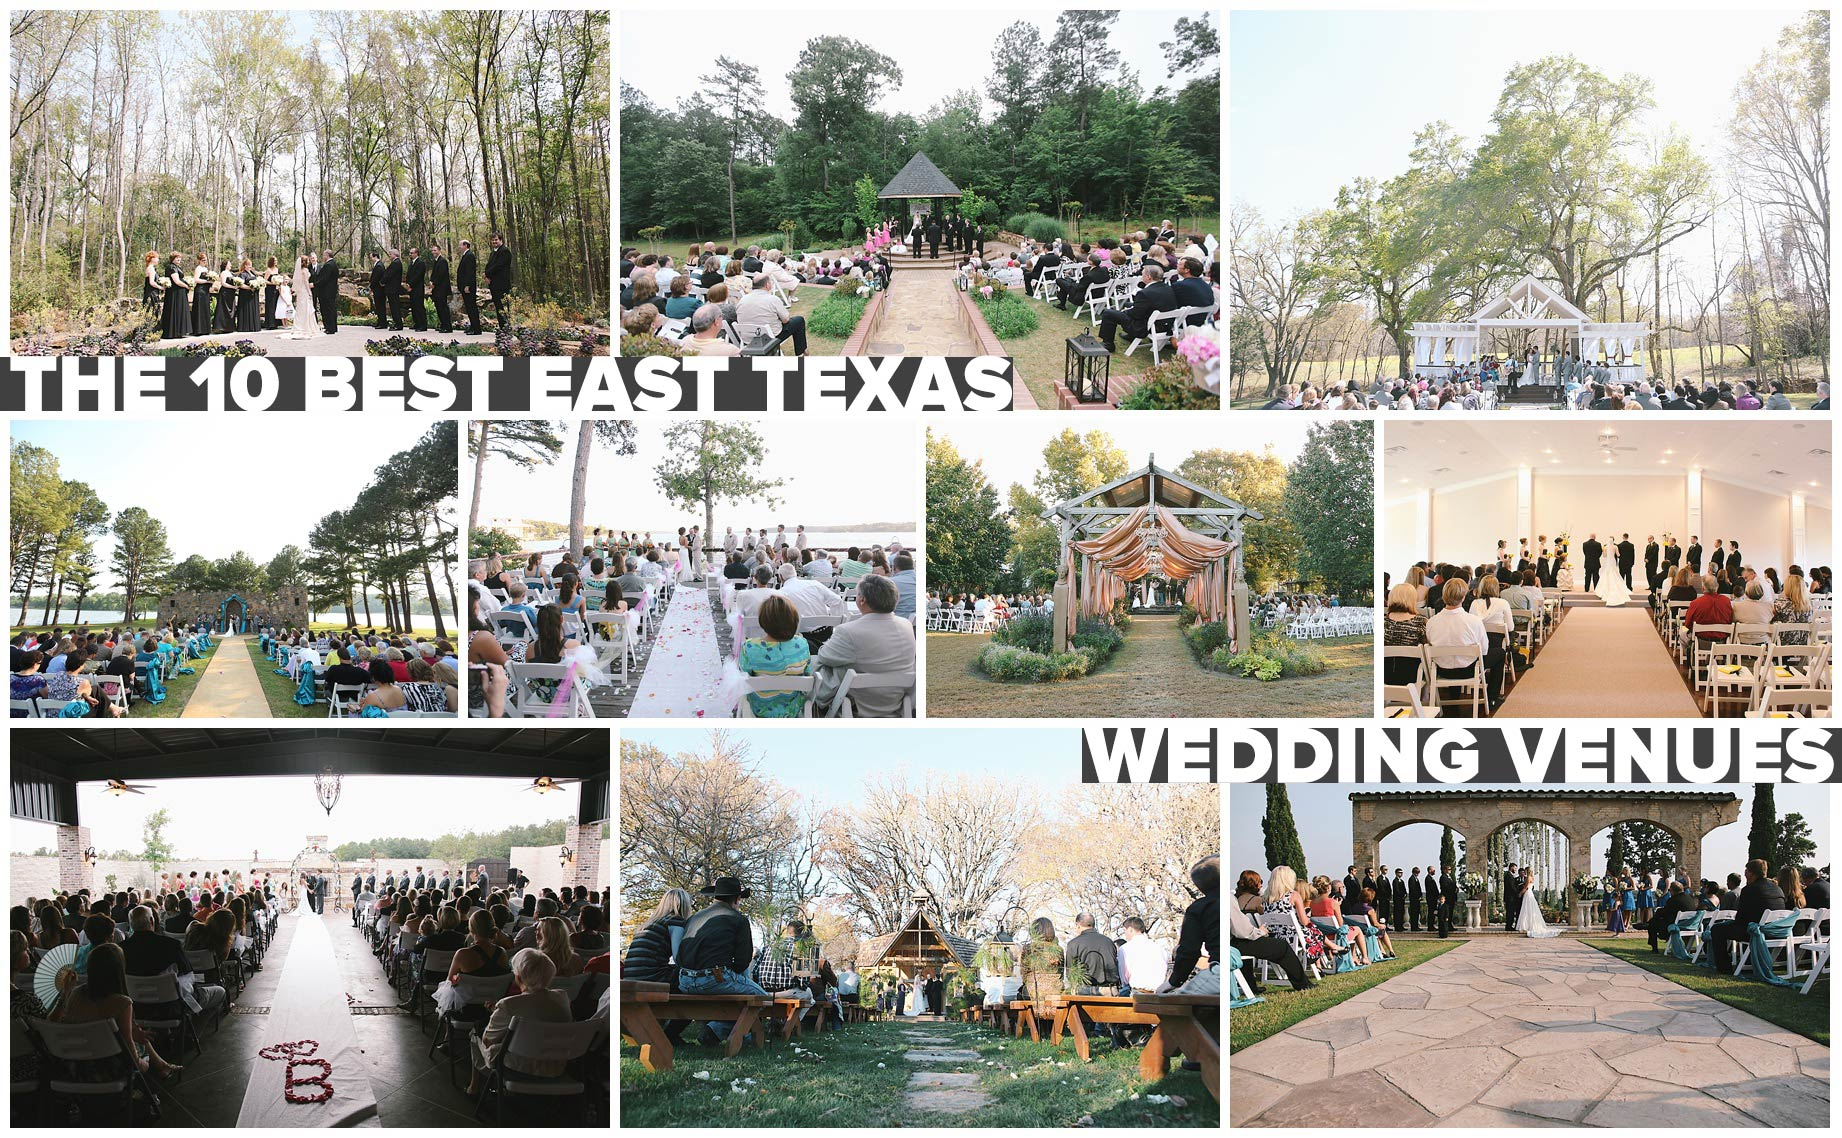 10 amazing places to get married in east texas alexm for Places to have receptions for weddings